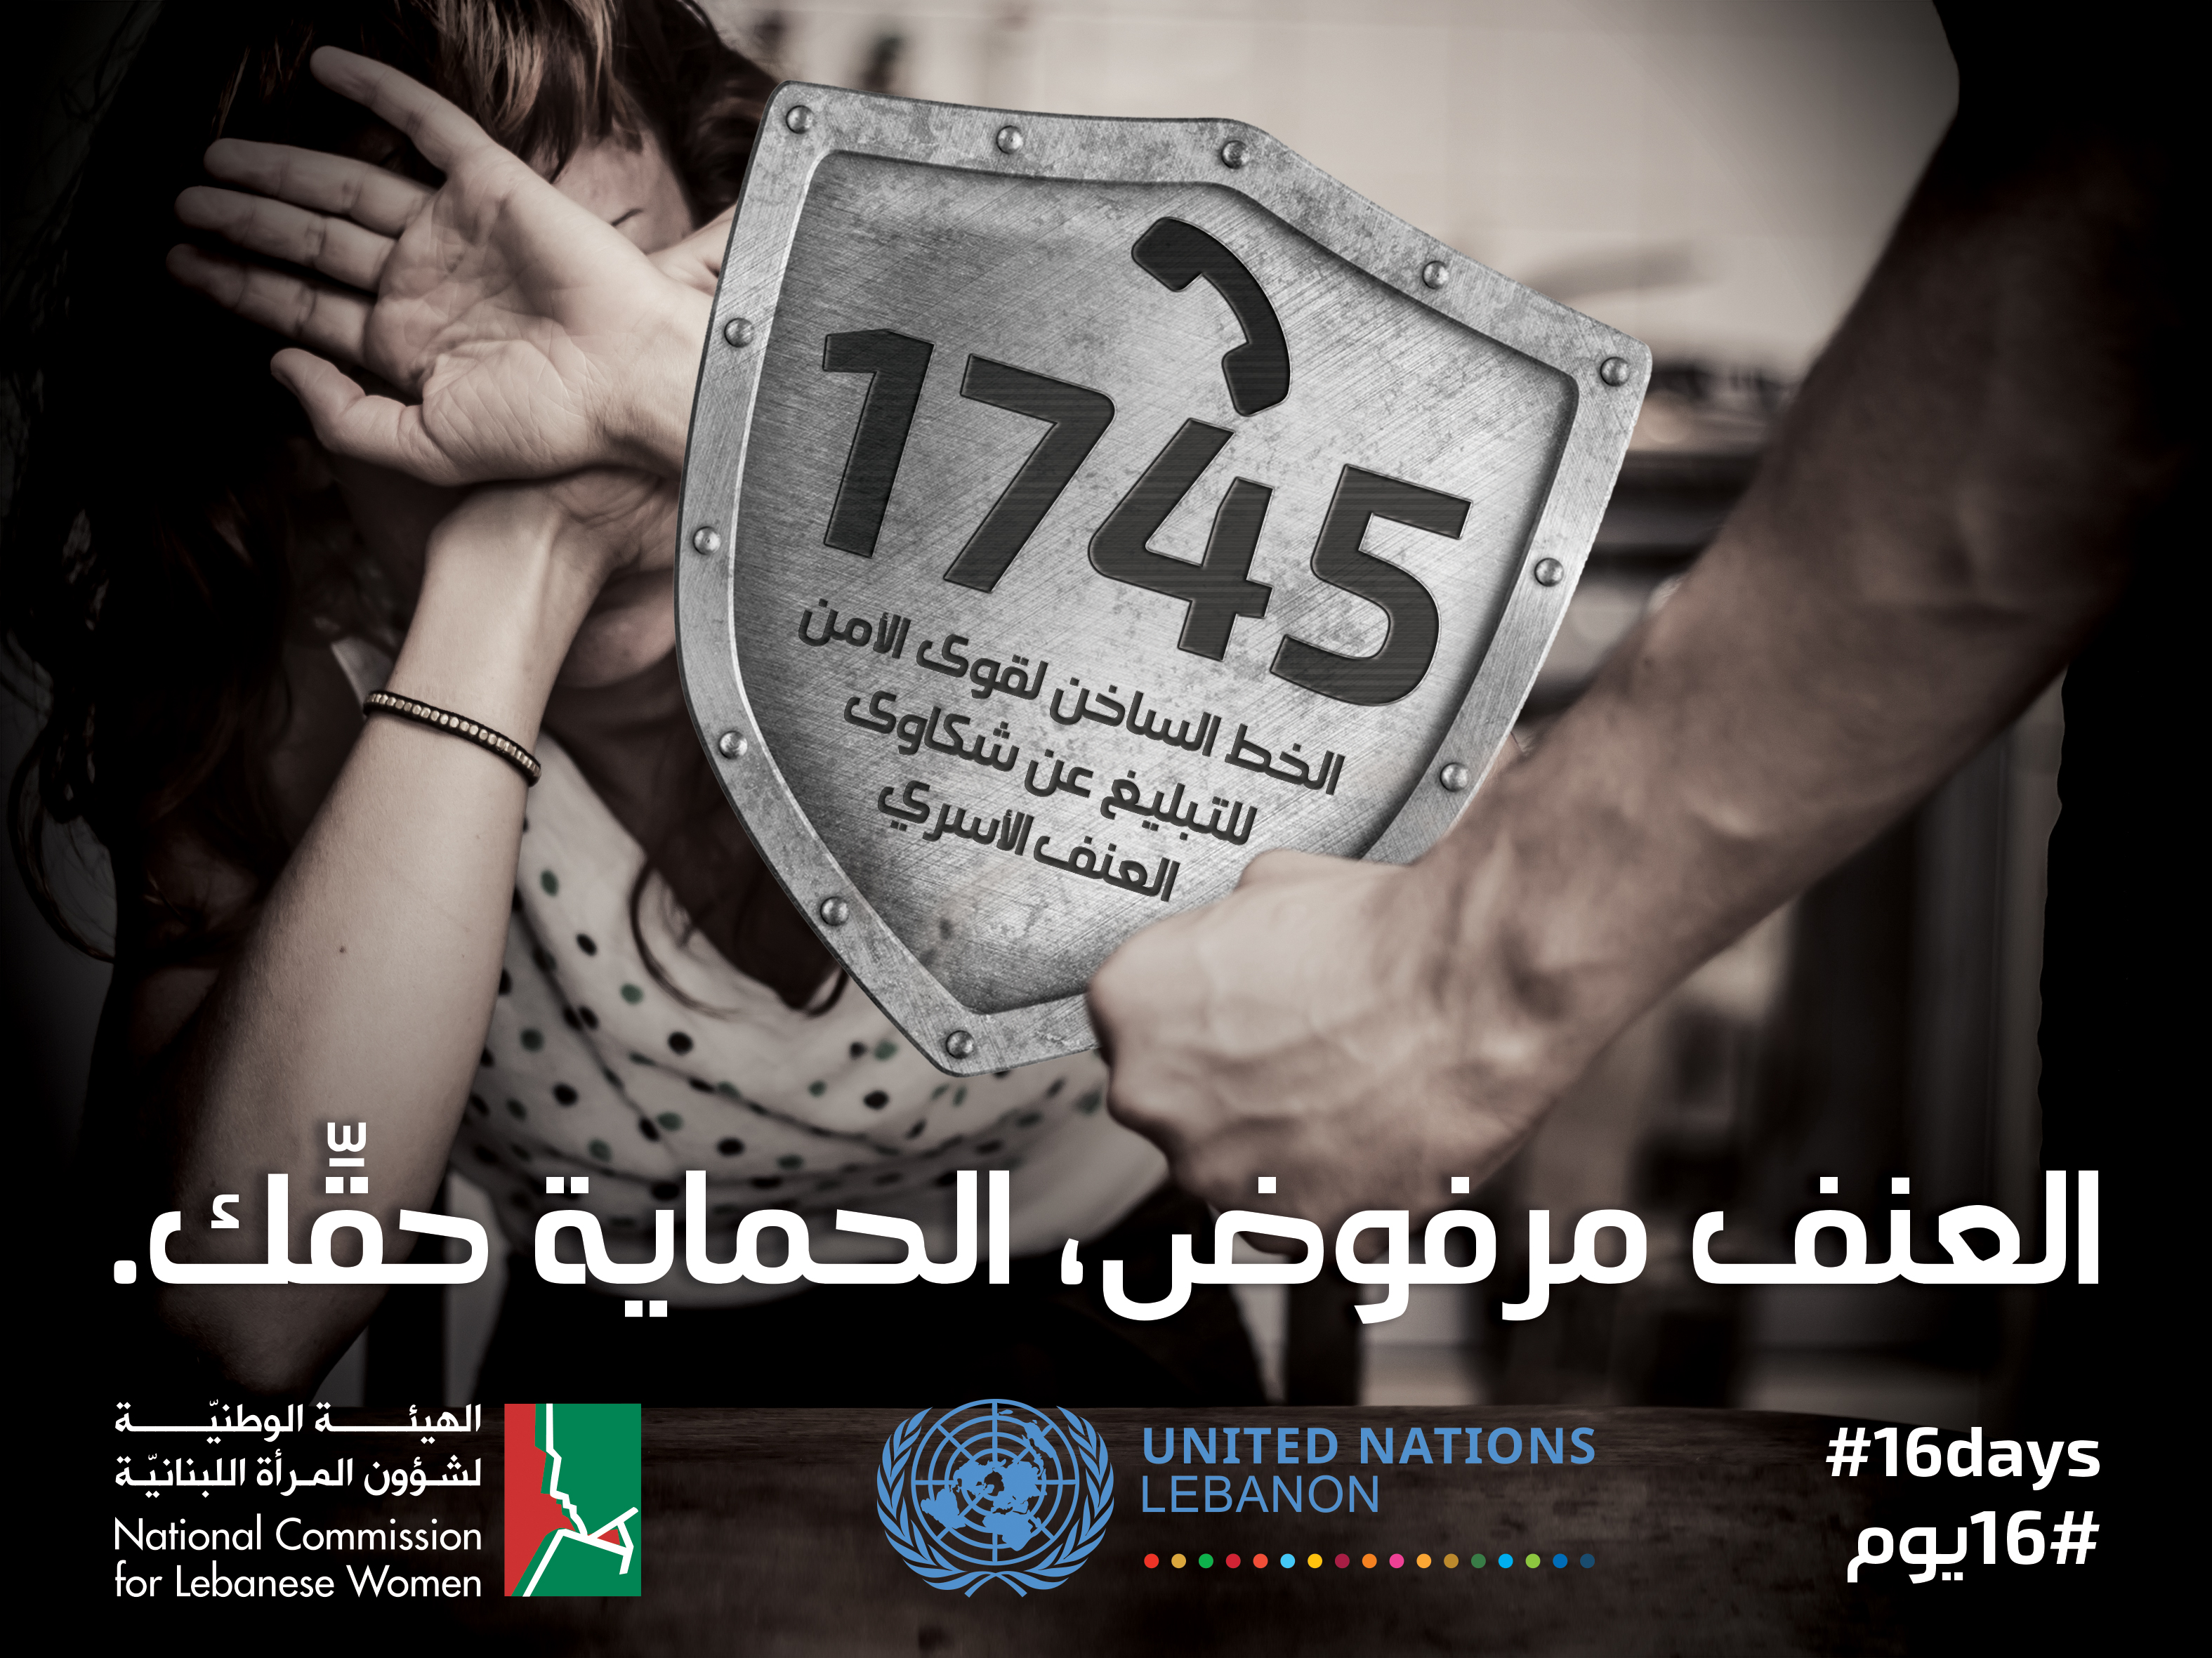 Press release: The United Nations and the National Commission for Lebanese Women Launch a 16-Day Campaign Against Gender-based violence